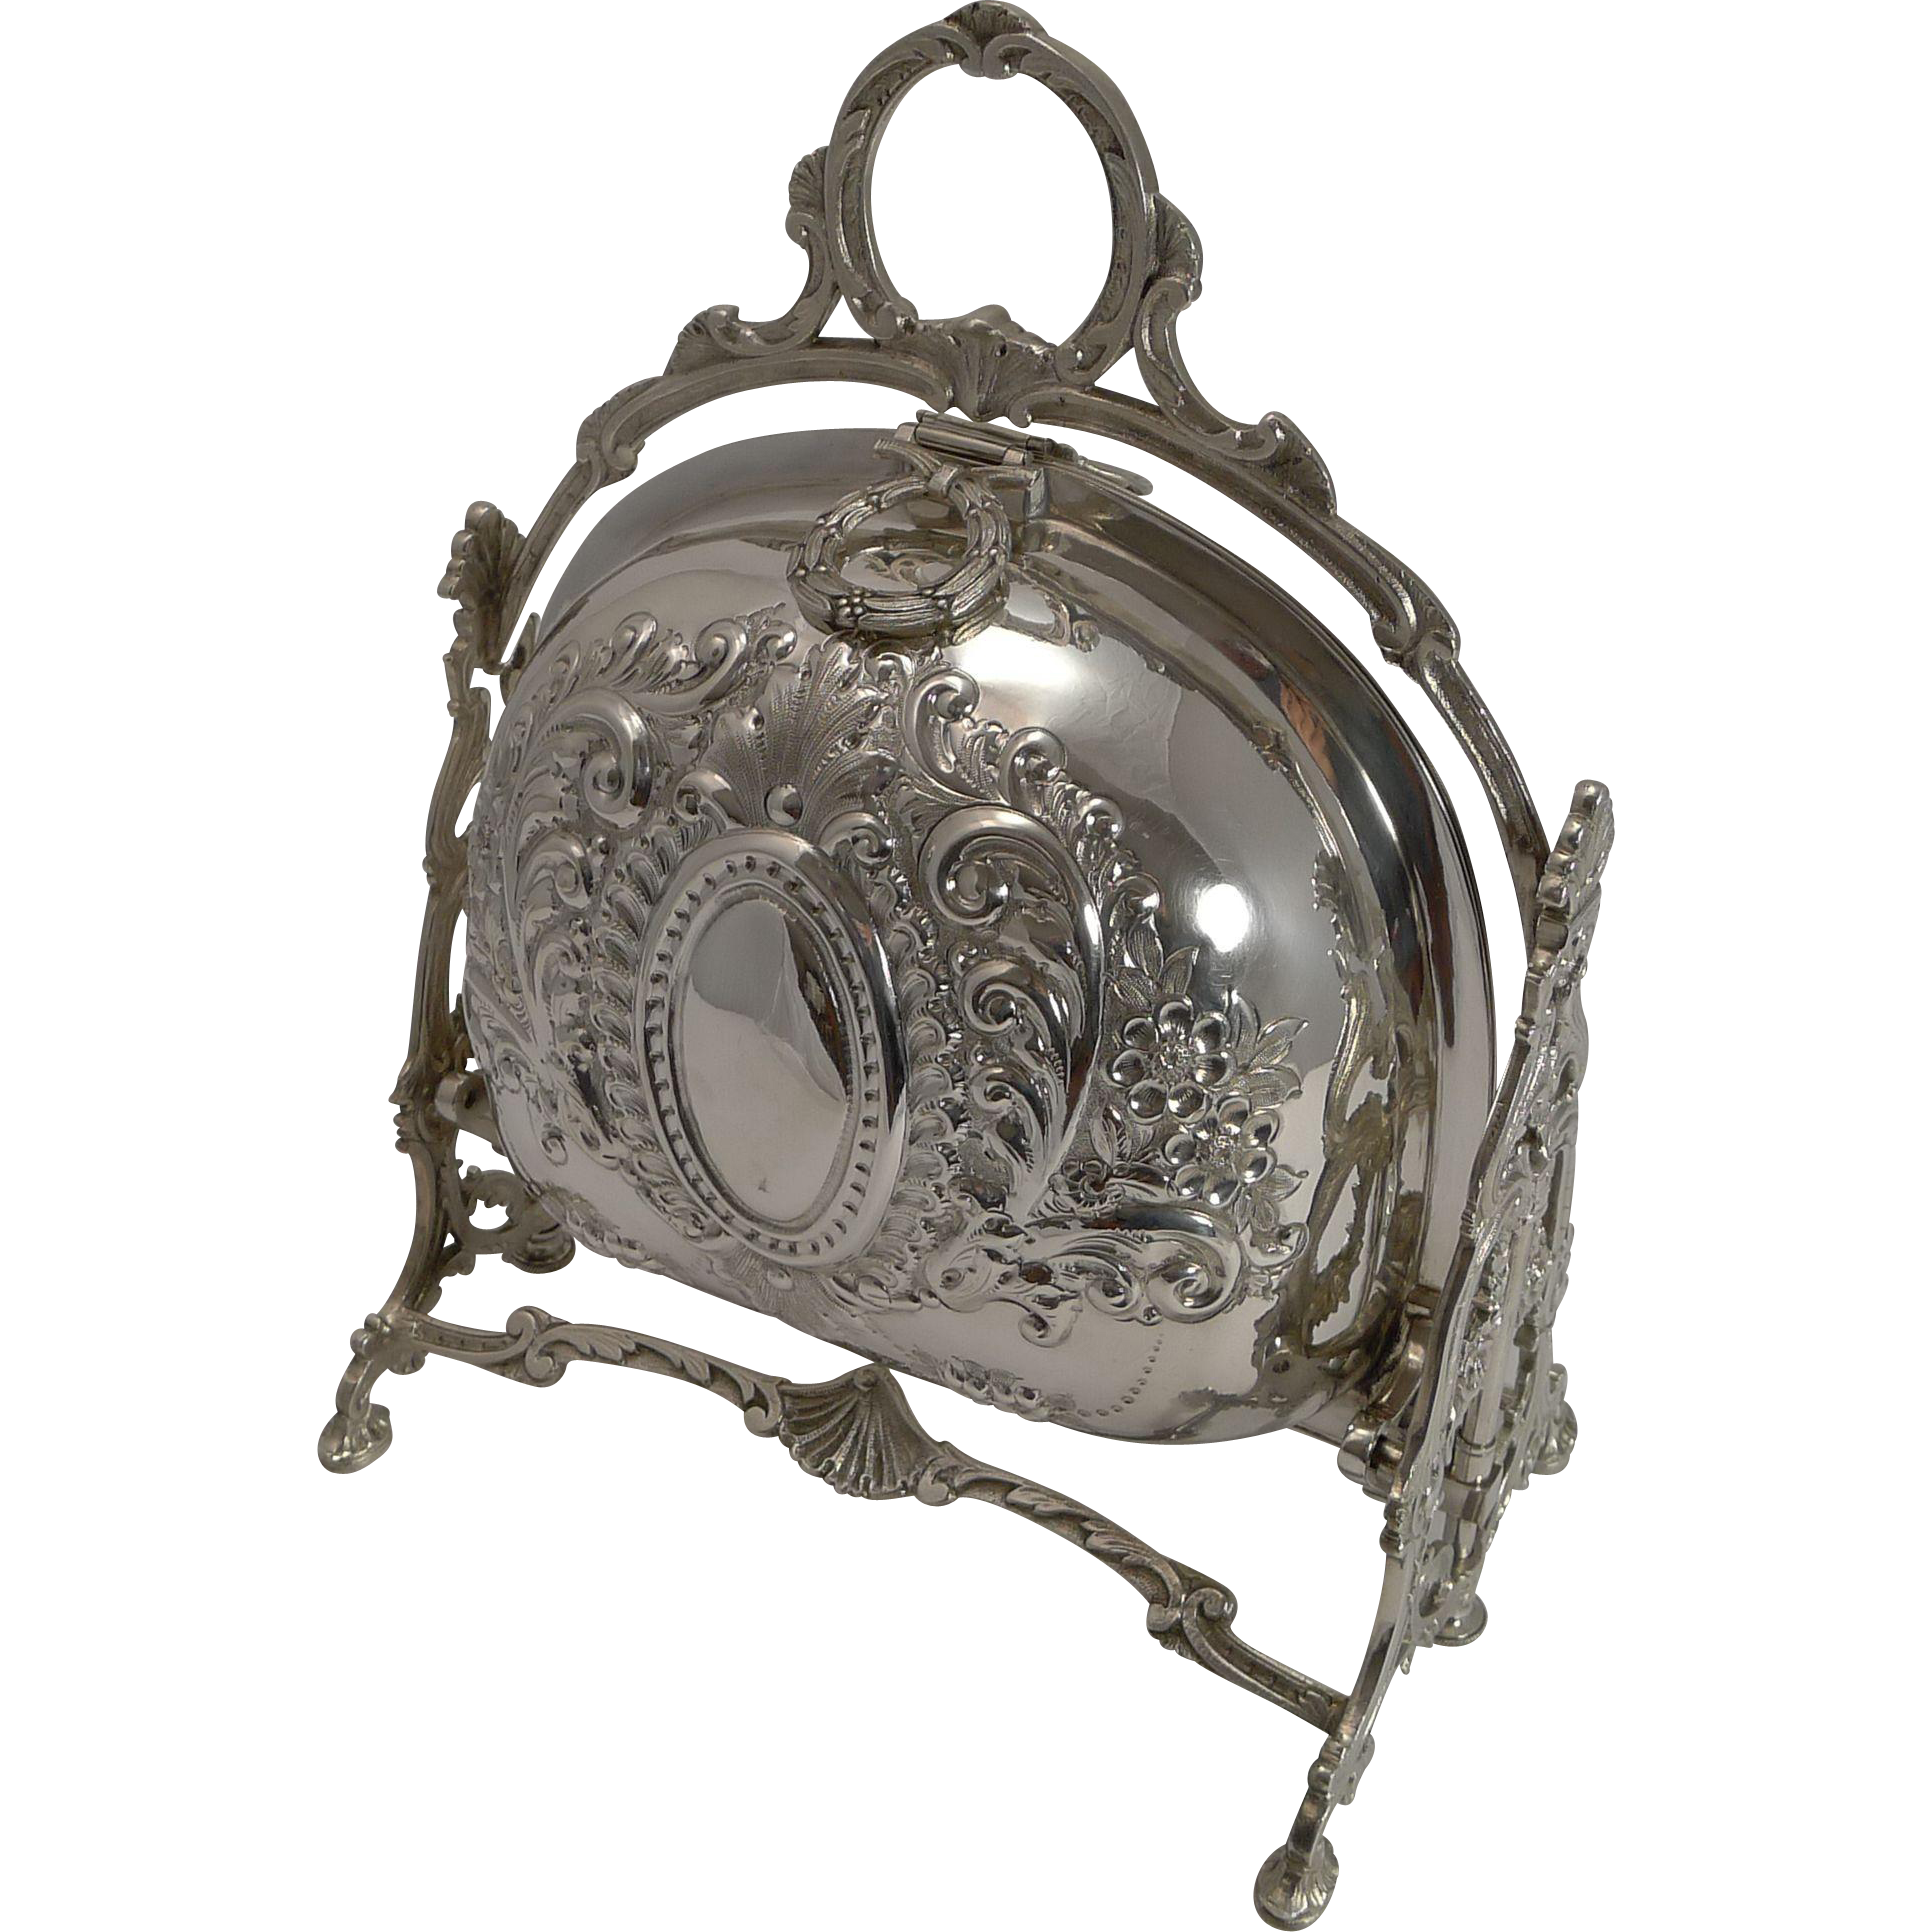 Antique English Decorative Silver Plated Staniforth's Biscuit Box Dated 1900